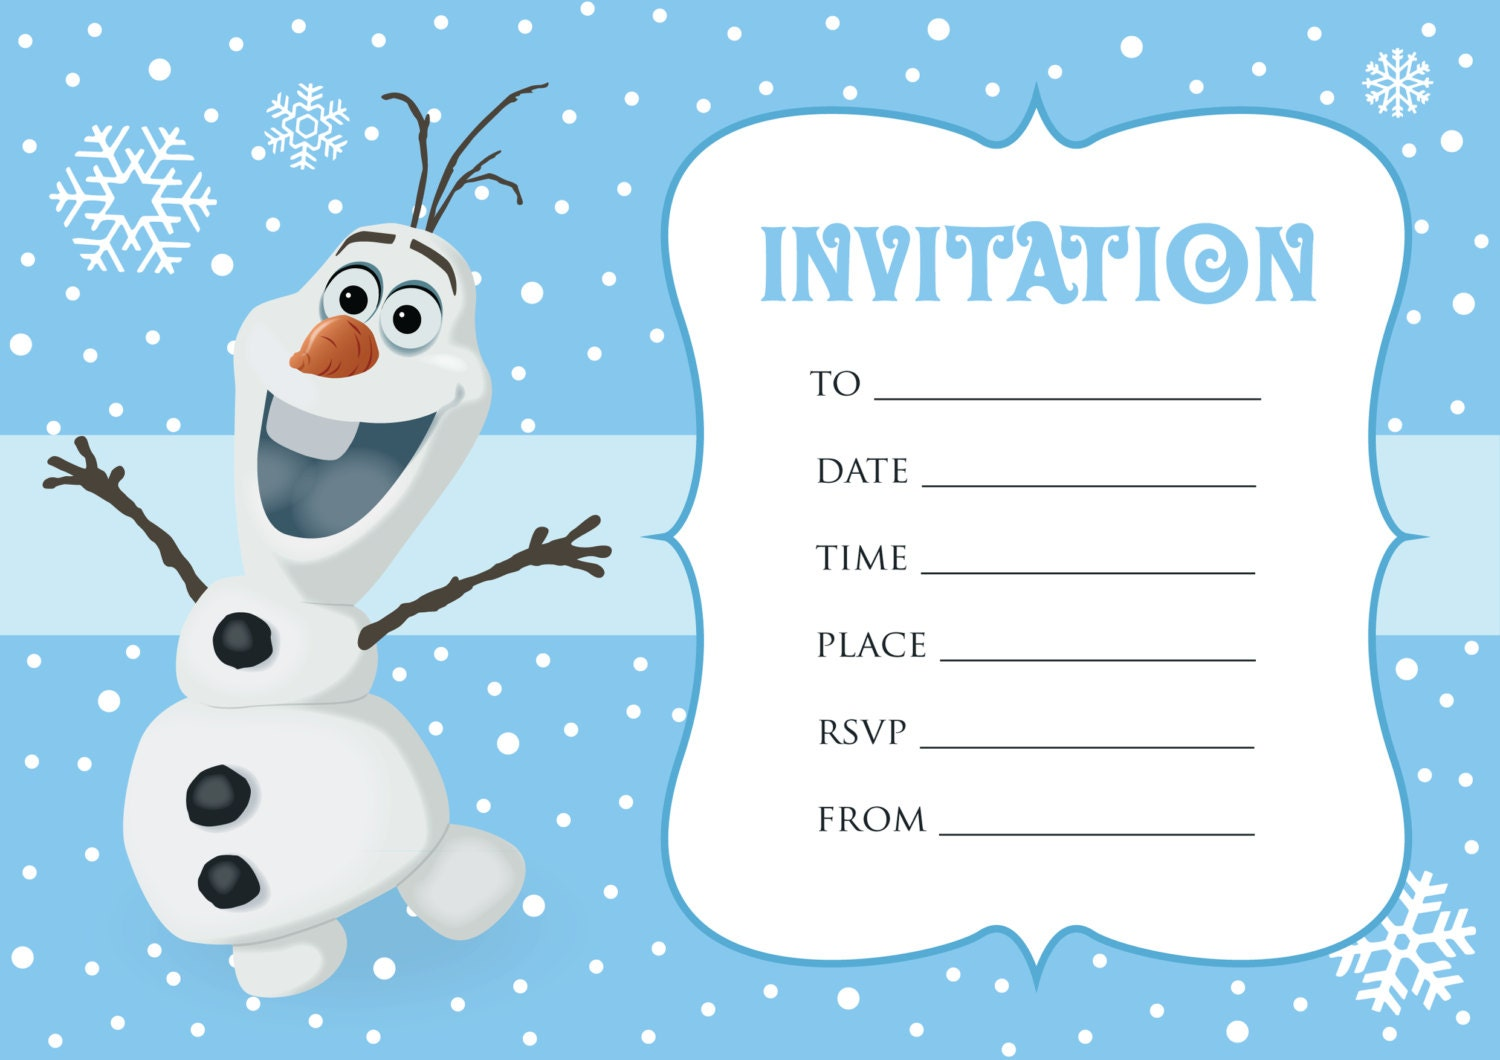 Birthday Invitation Frozen was great invitation design